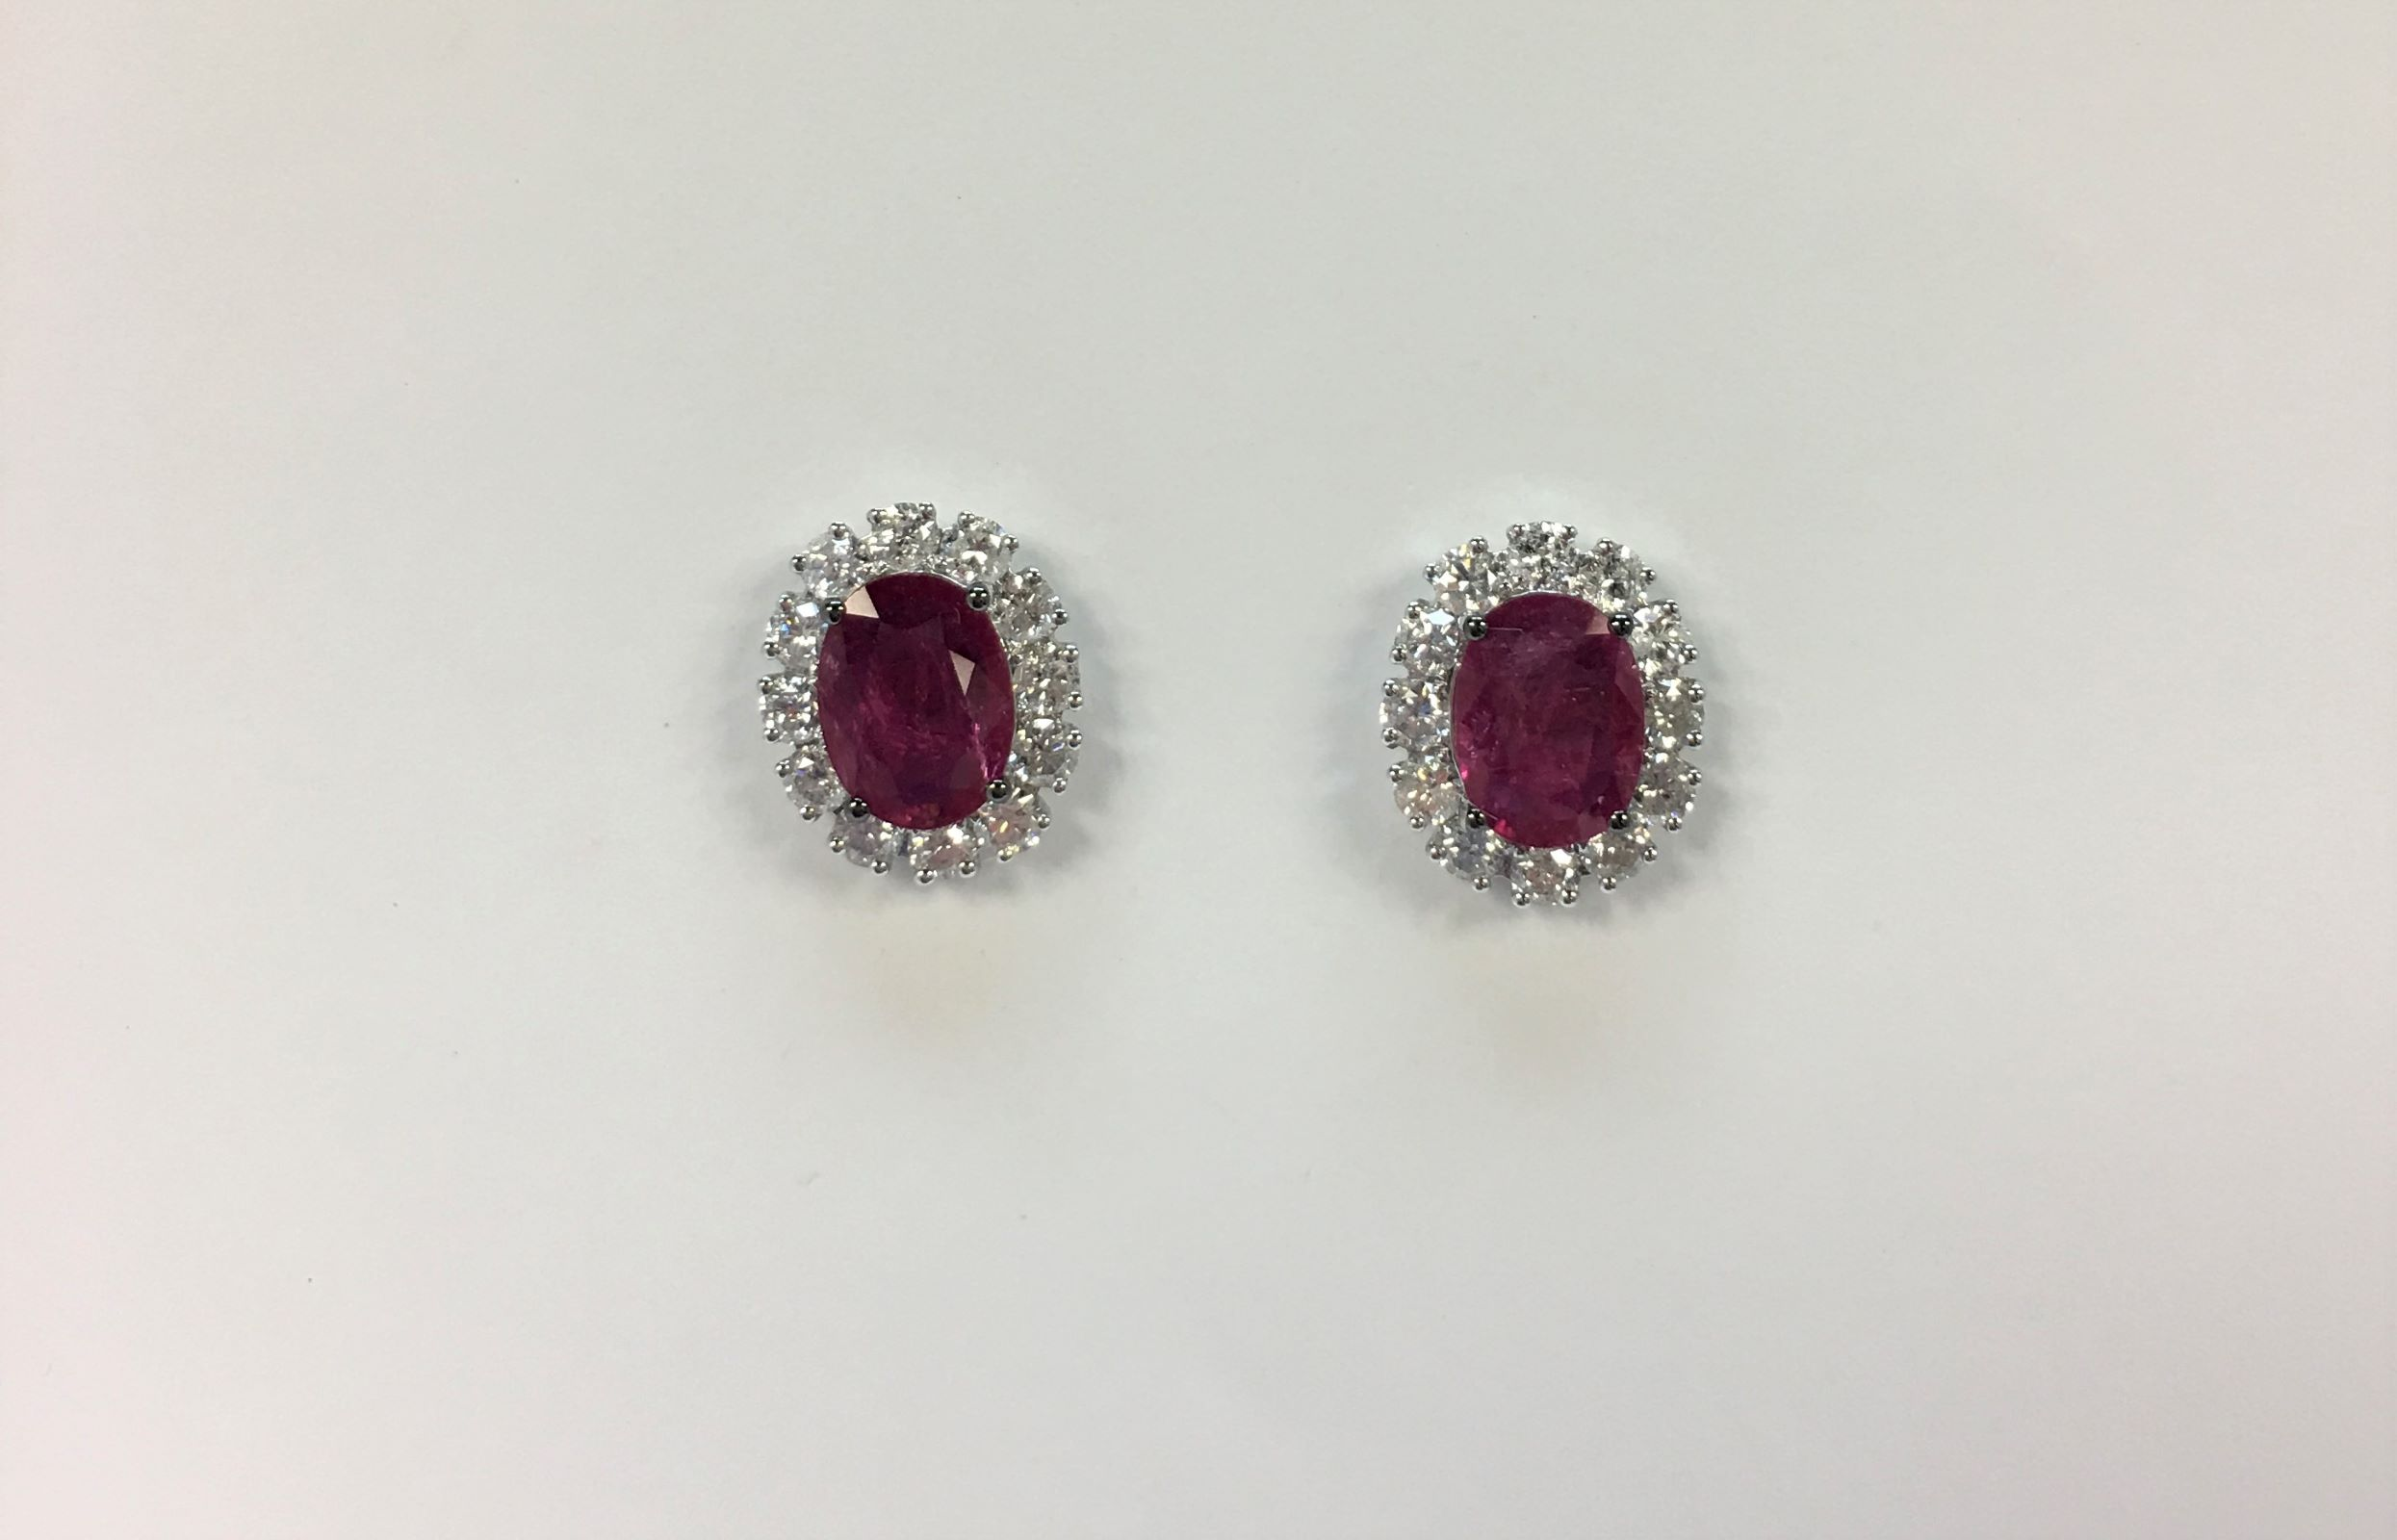 2 Carats Ruby & Diamond Earrings